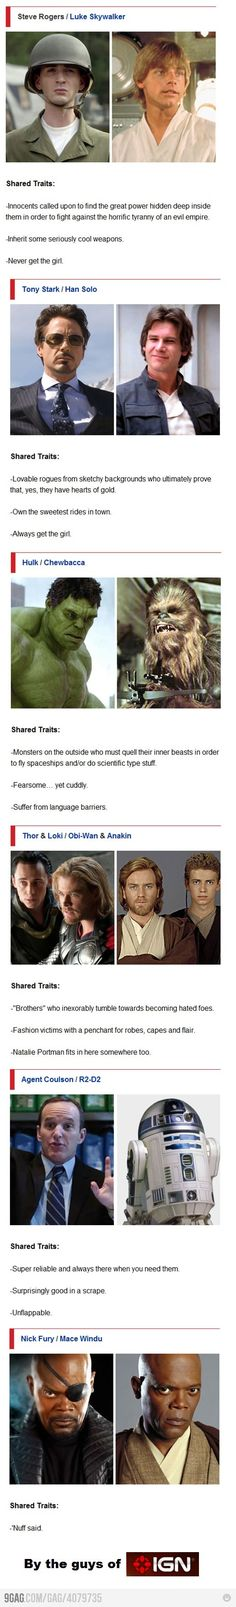 Avengers vs Star Wars